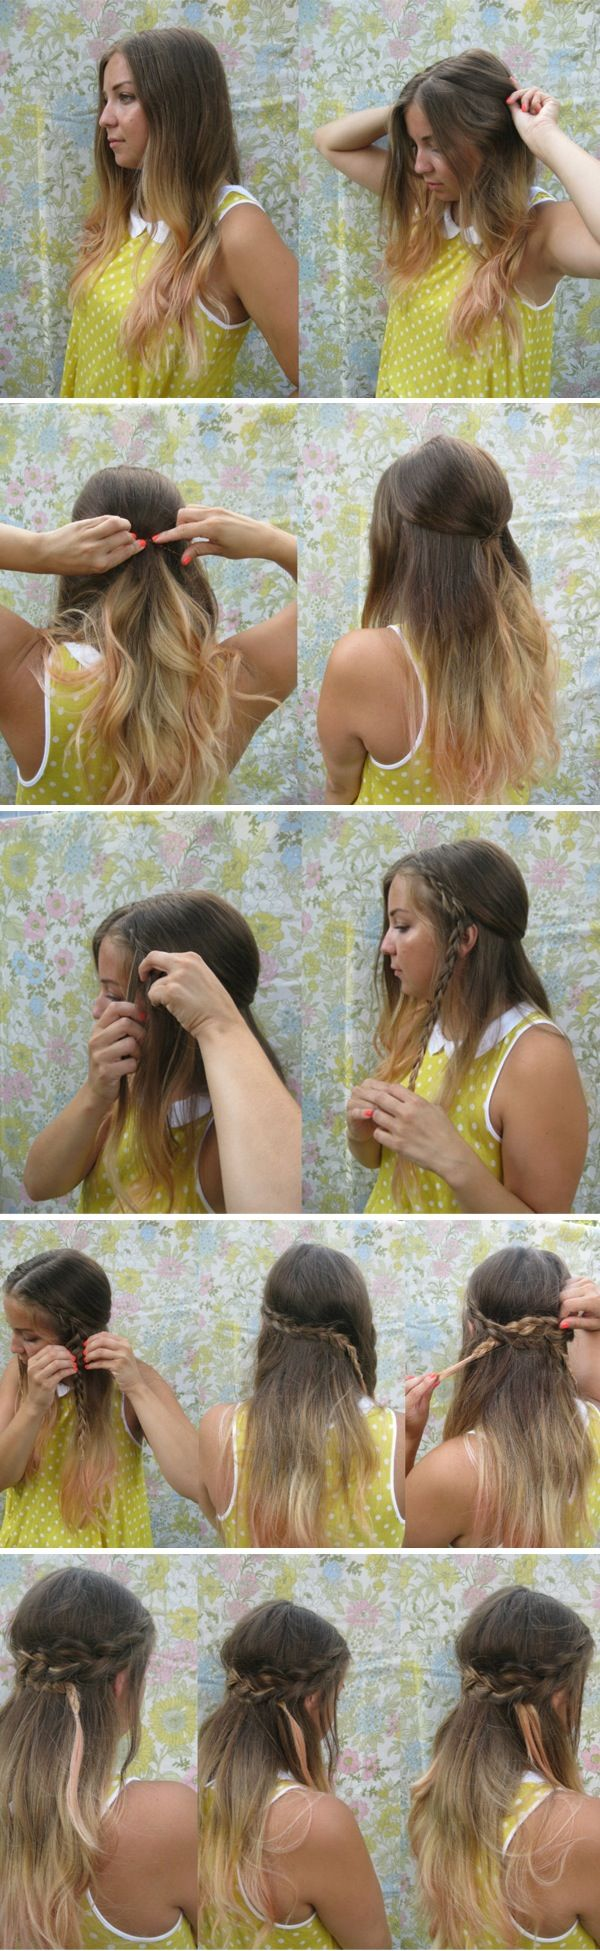 Braided Band Tutorial